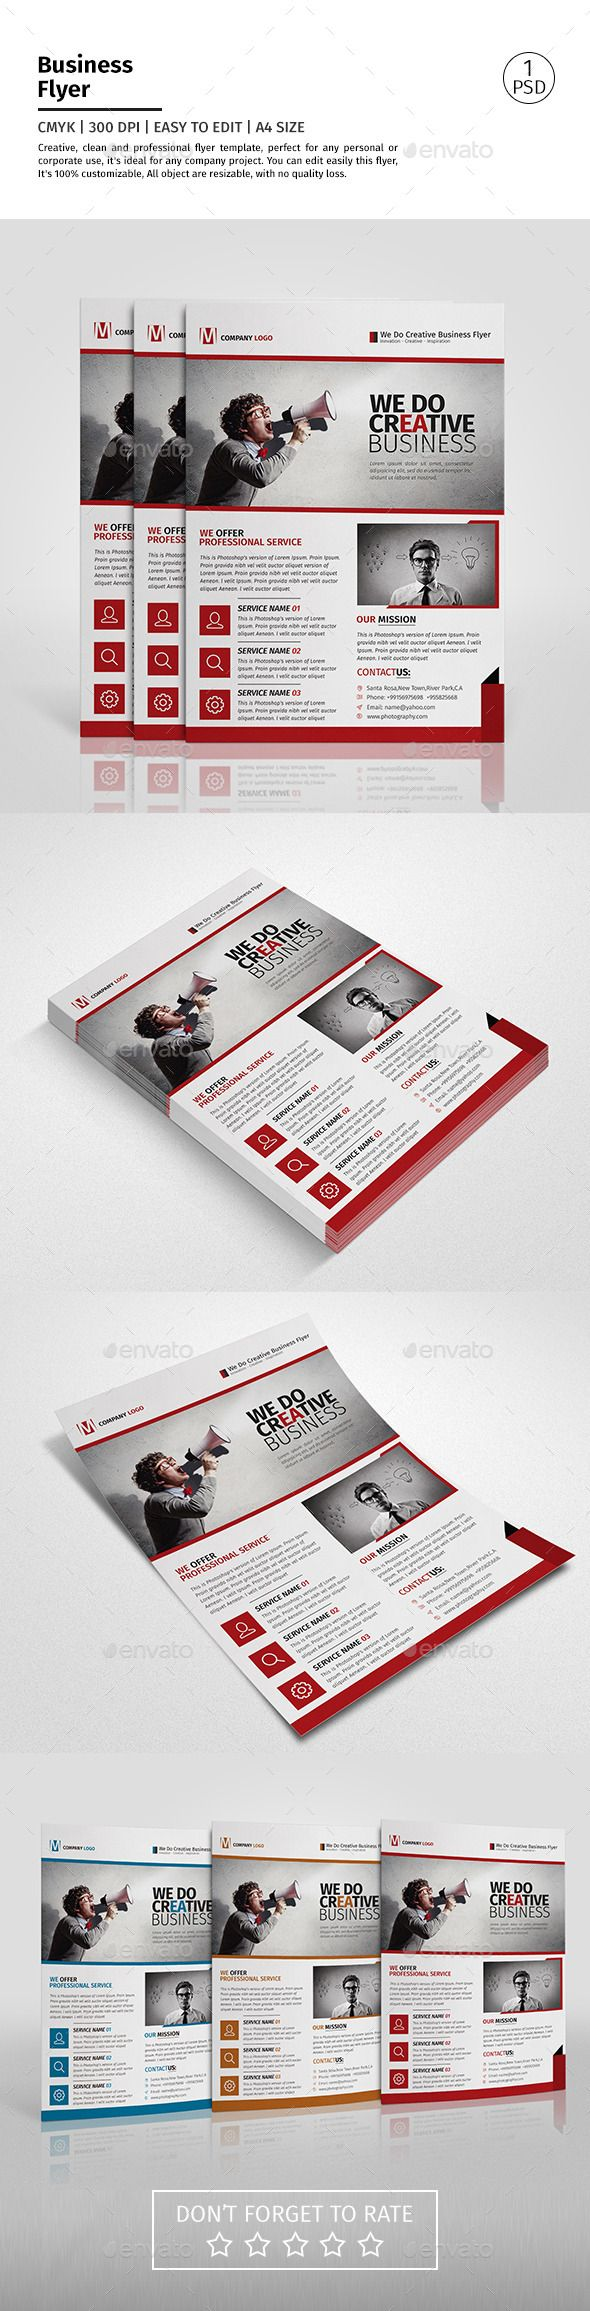 A4 Corporate Business Flyer Template Vol 10 Business Flyer